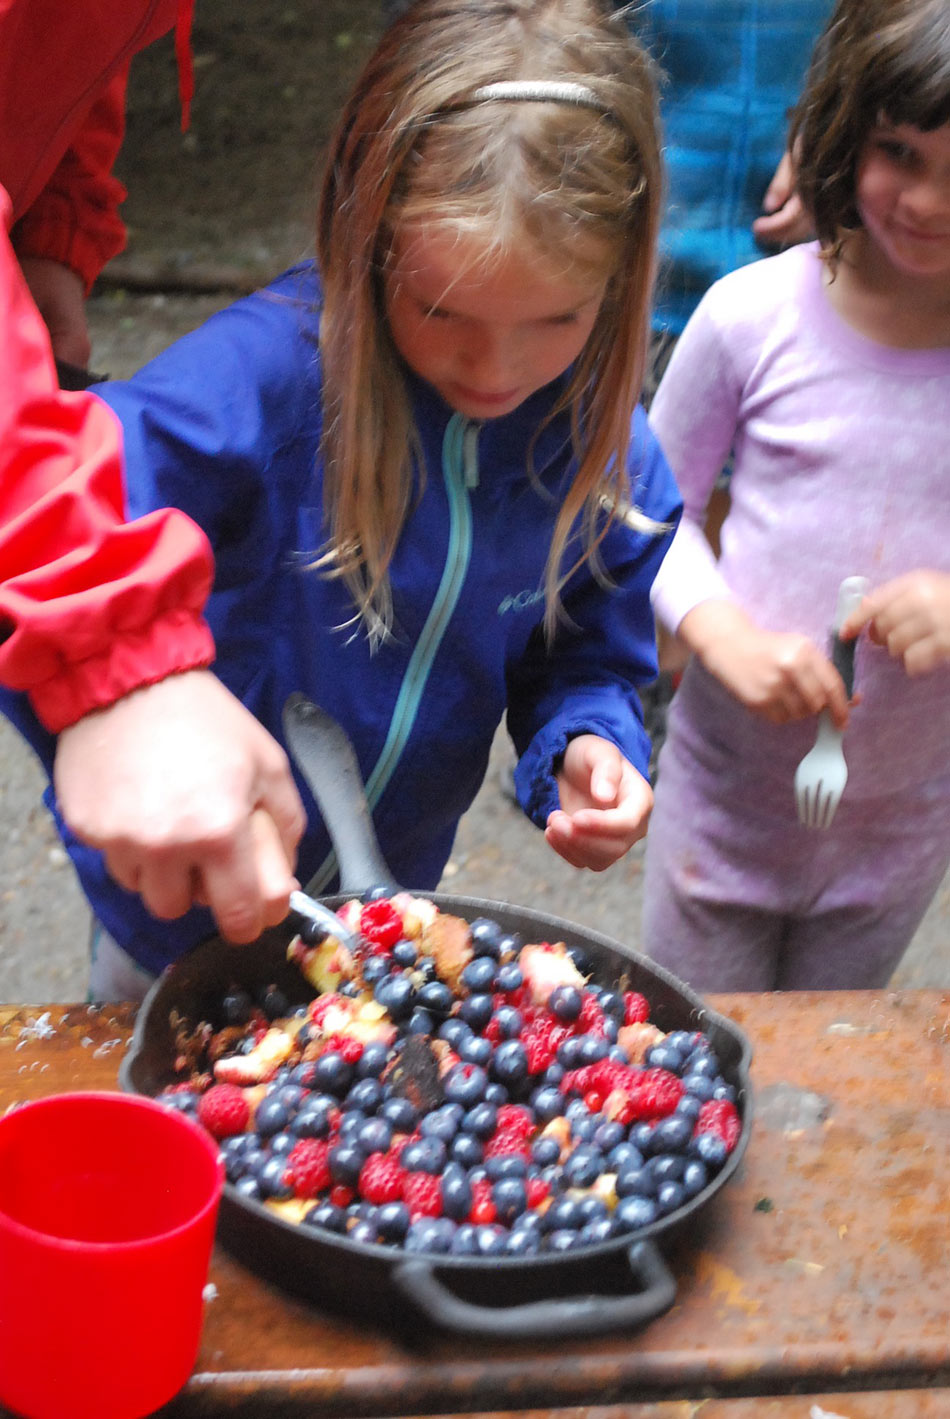 Kids cooking at summer camp